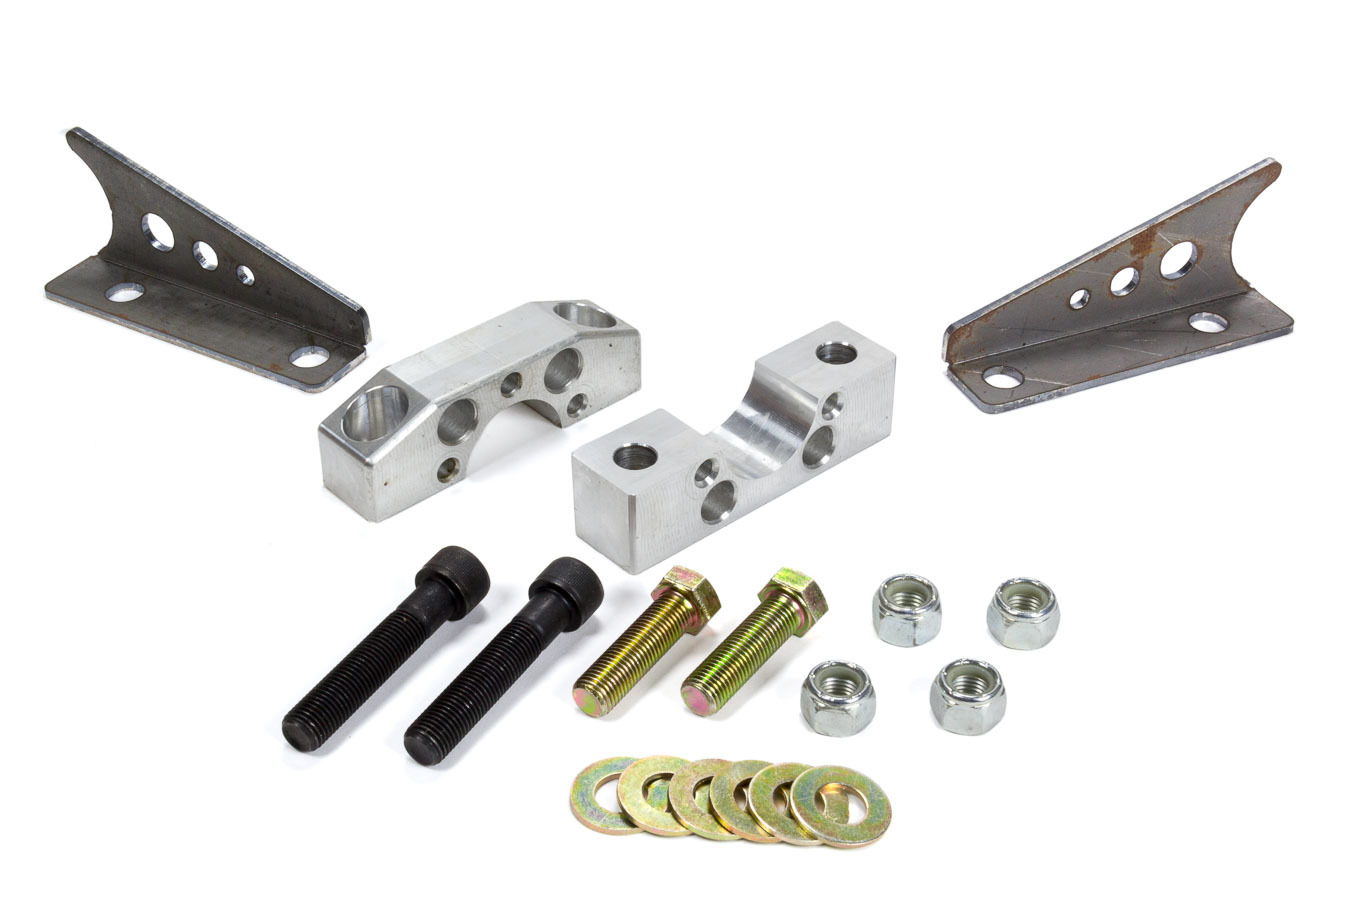 Chassis Engineering 2701 Rack and Pinion Mount, Brackets / Hardware, Mustang II / Pinto 1971-72, Kit